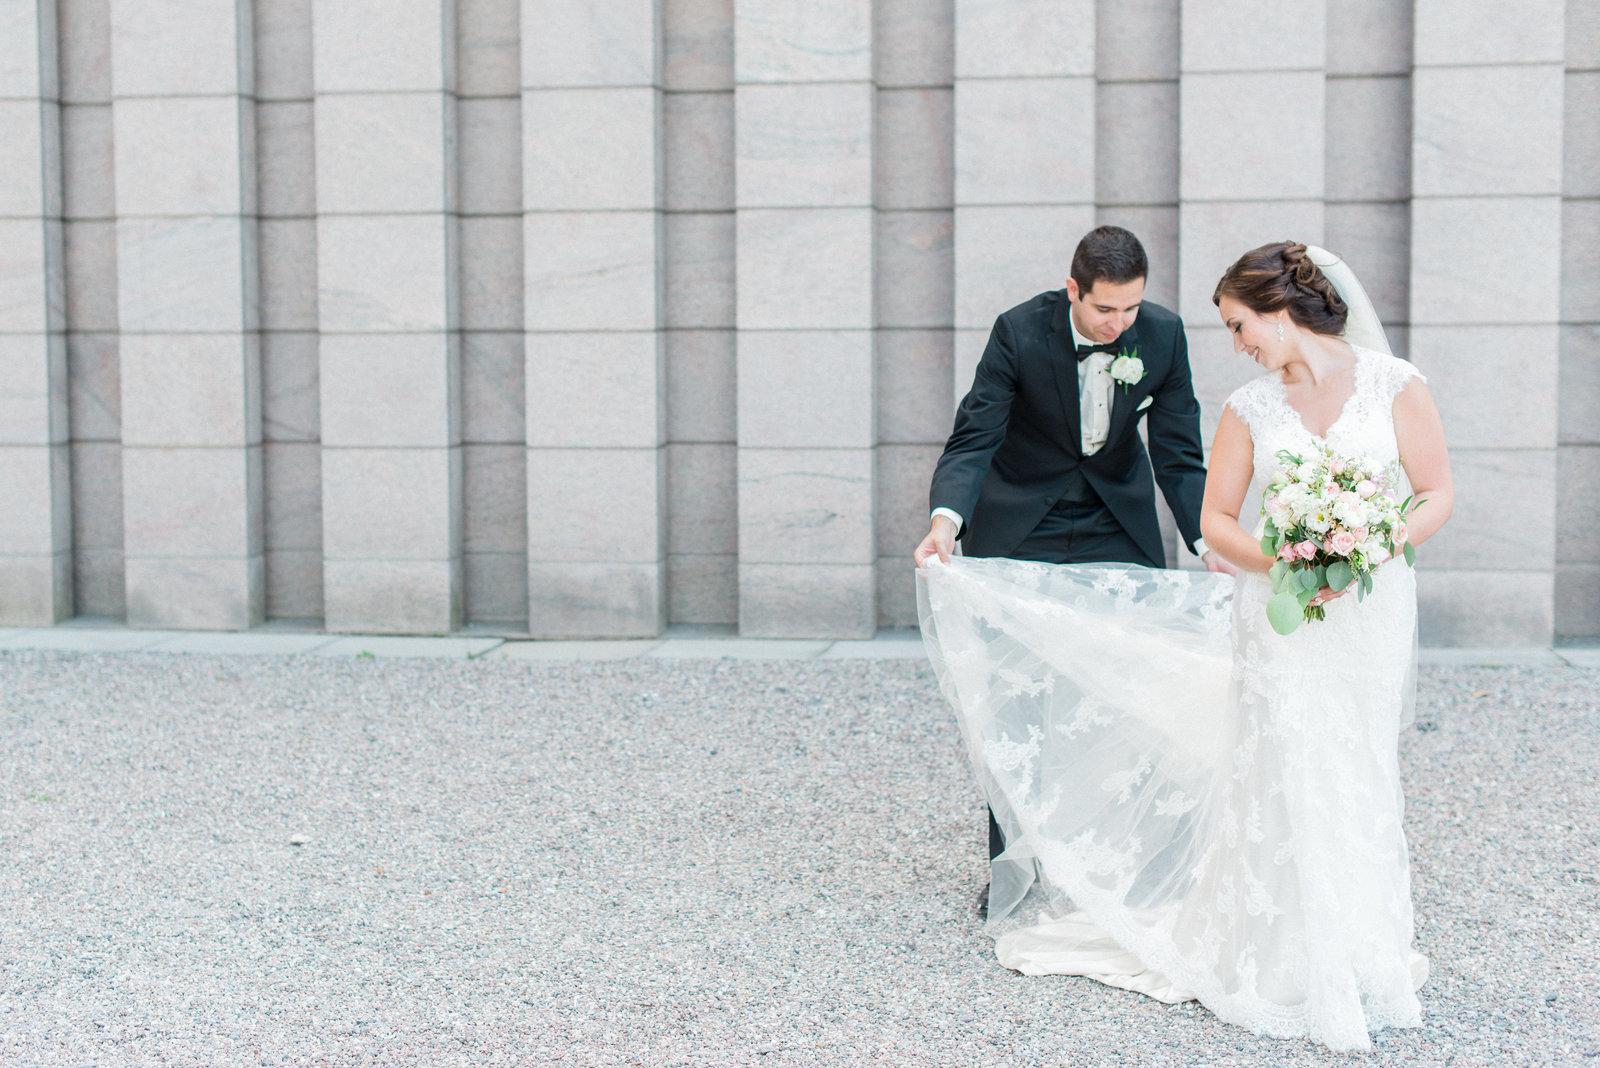 Client Experience, Photo Delivery, Wedding Photography Reviews and Pricing